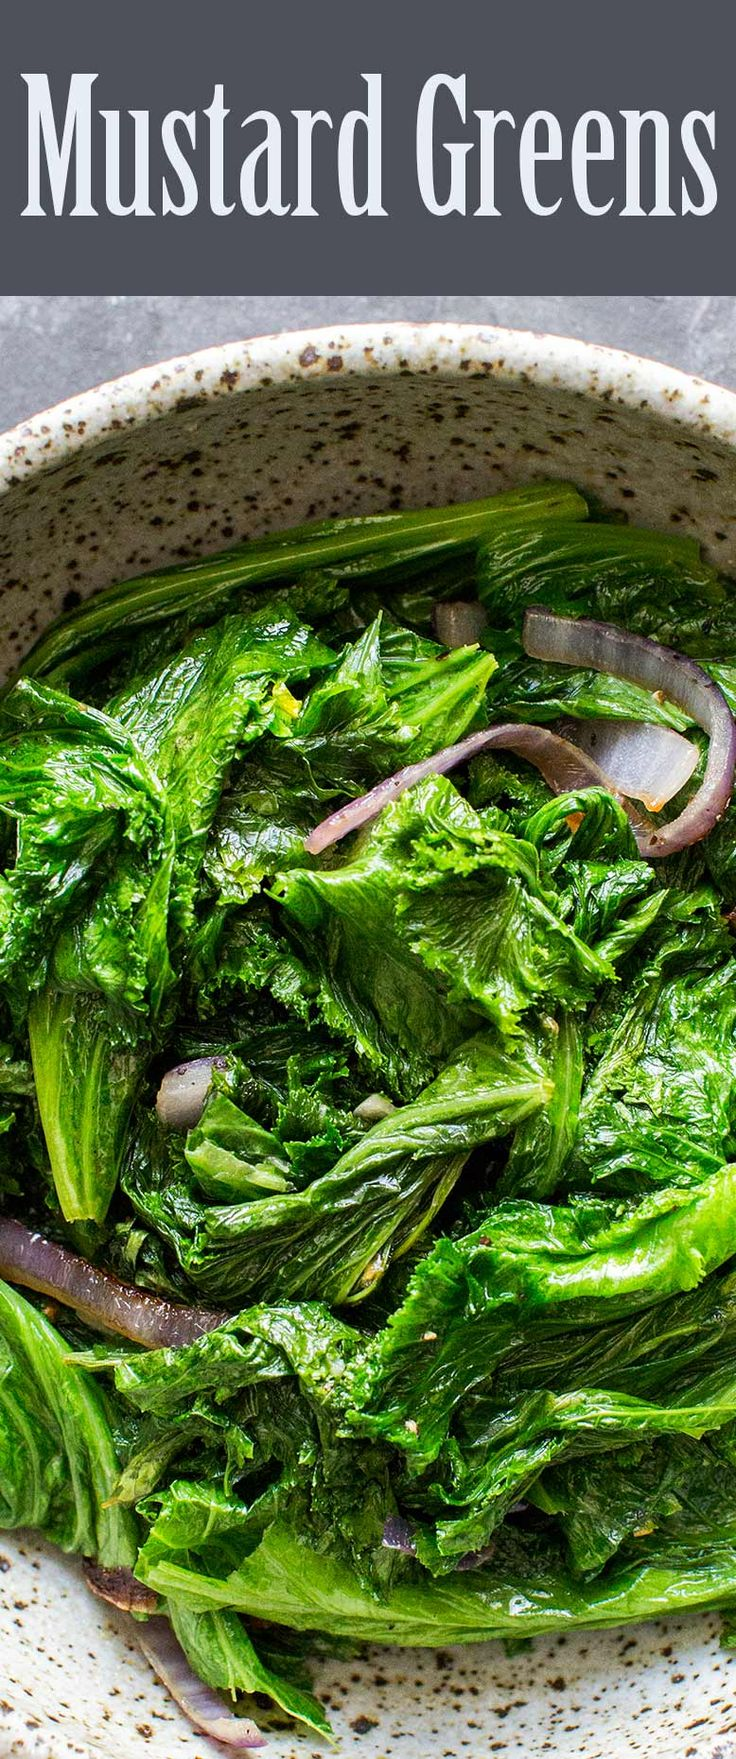 Peppery Mustard Greens! simply sautéed with onions, garlic, and olive oil and a dash of sesame oil to finish. Paleo, gluten-free, vegan, healthy. Great side dish!